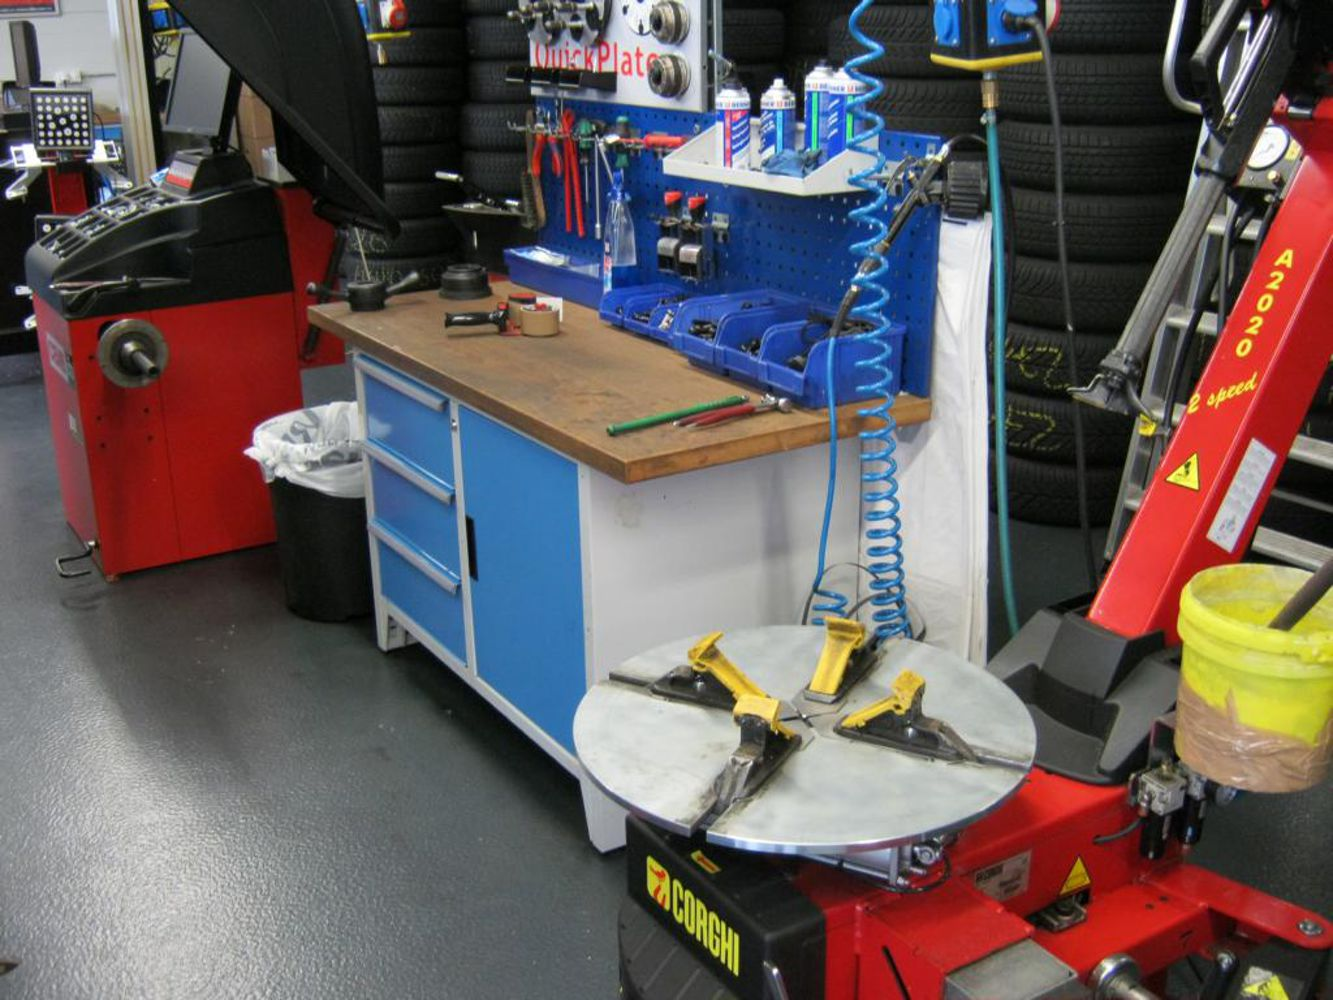 Workshop area with tyre changing machine